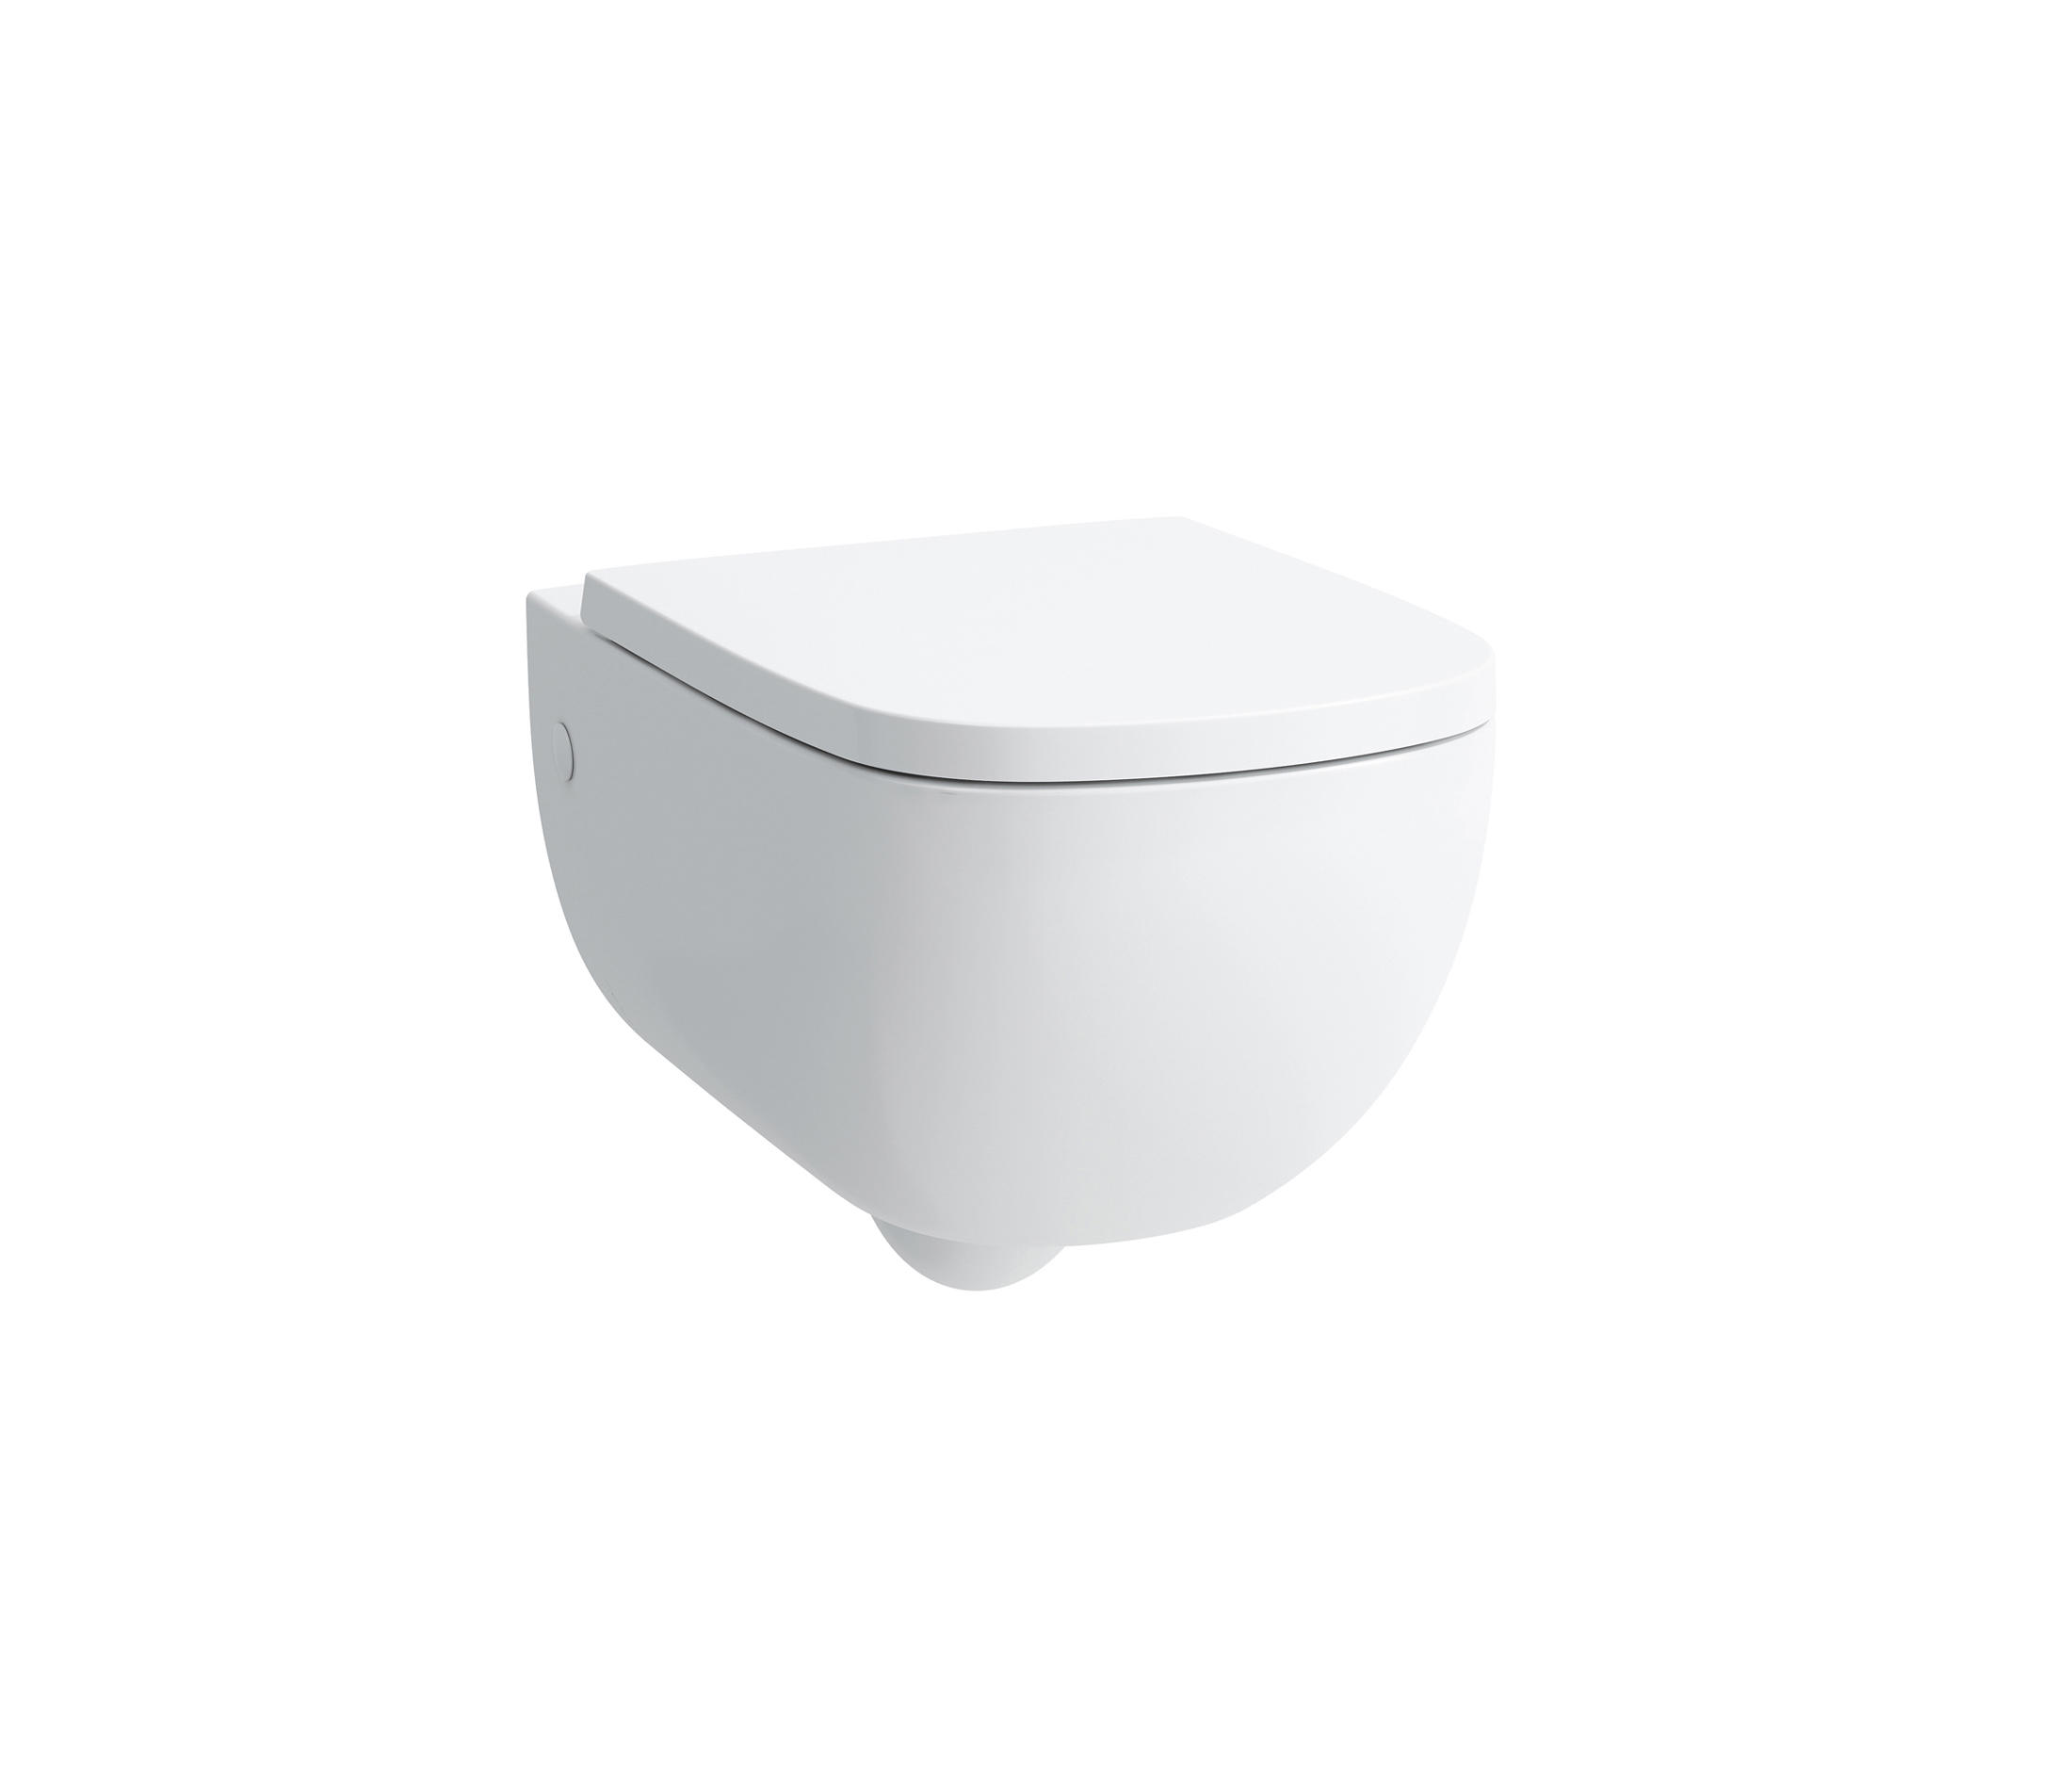 Wand Wc Kombination Palomba Collection Wand Wc Wcs Von Laufen Architonic